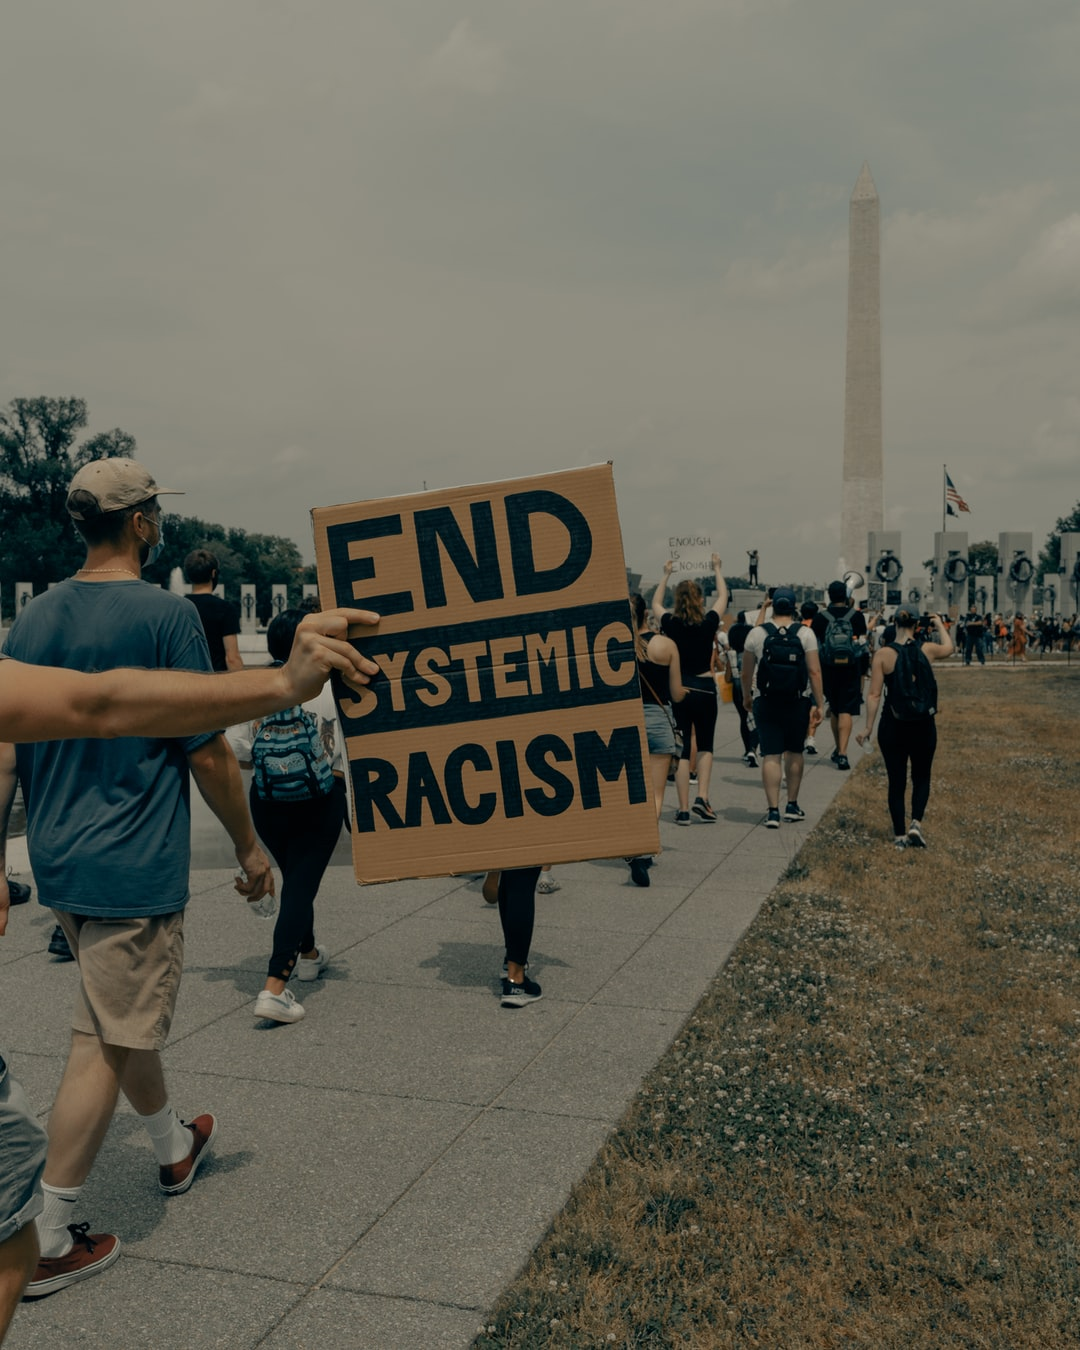 People march towards the Washington Monument at the Black Lives Matter protest in Washington DC 6/6/2020 (IG: @clay.banks)